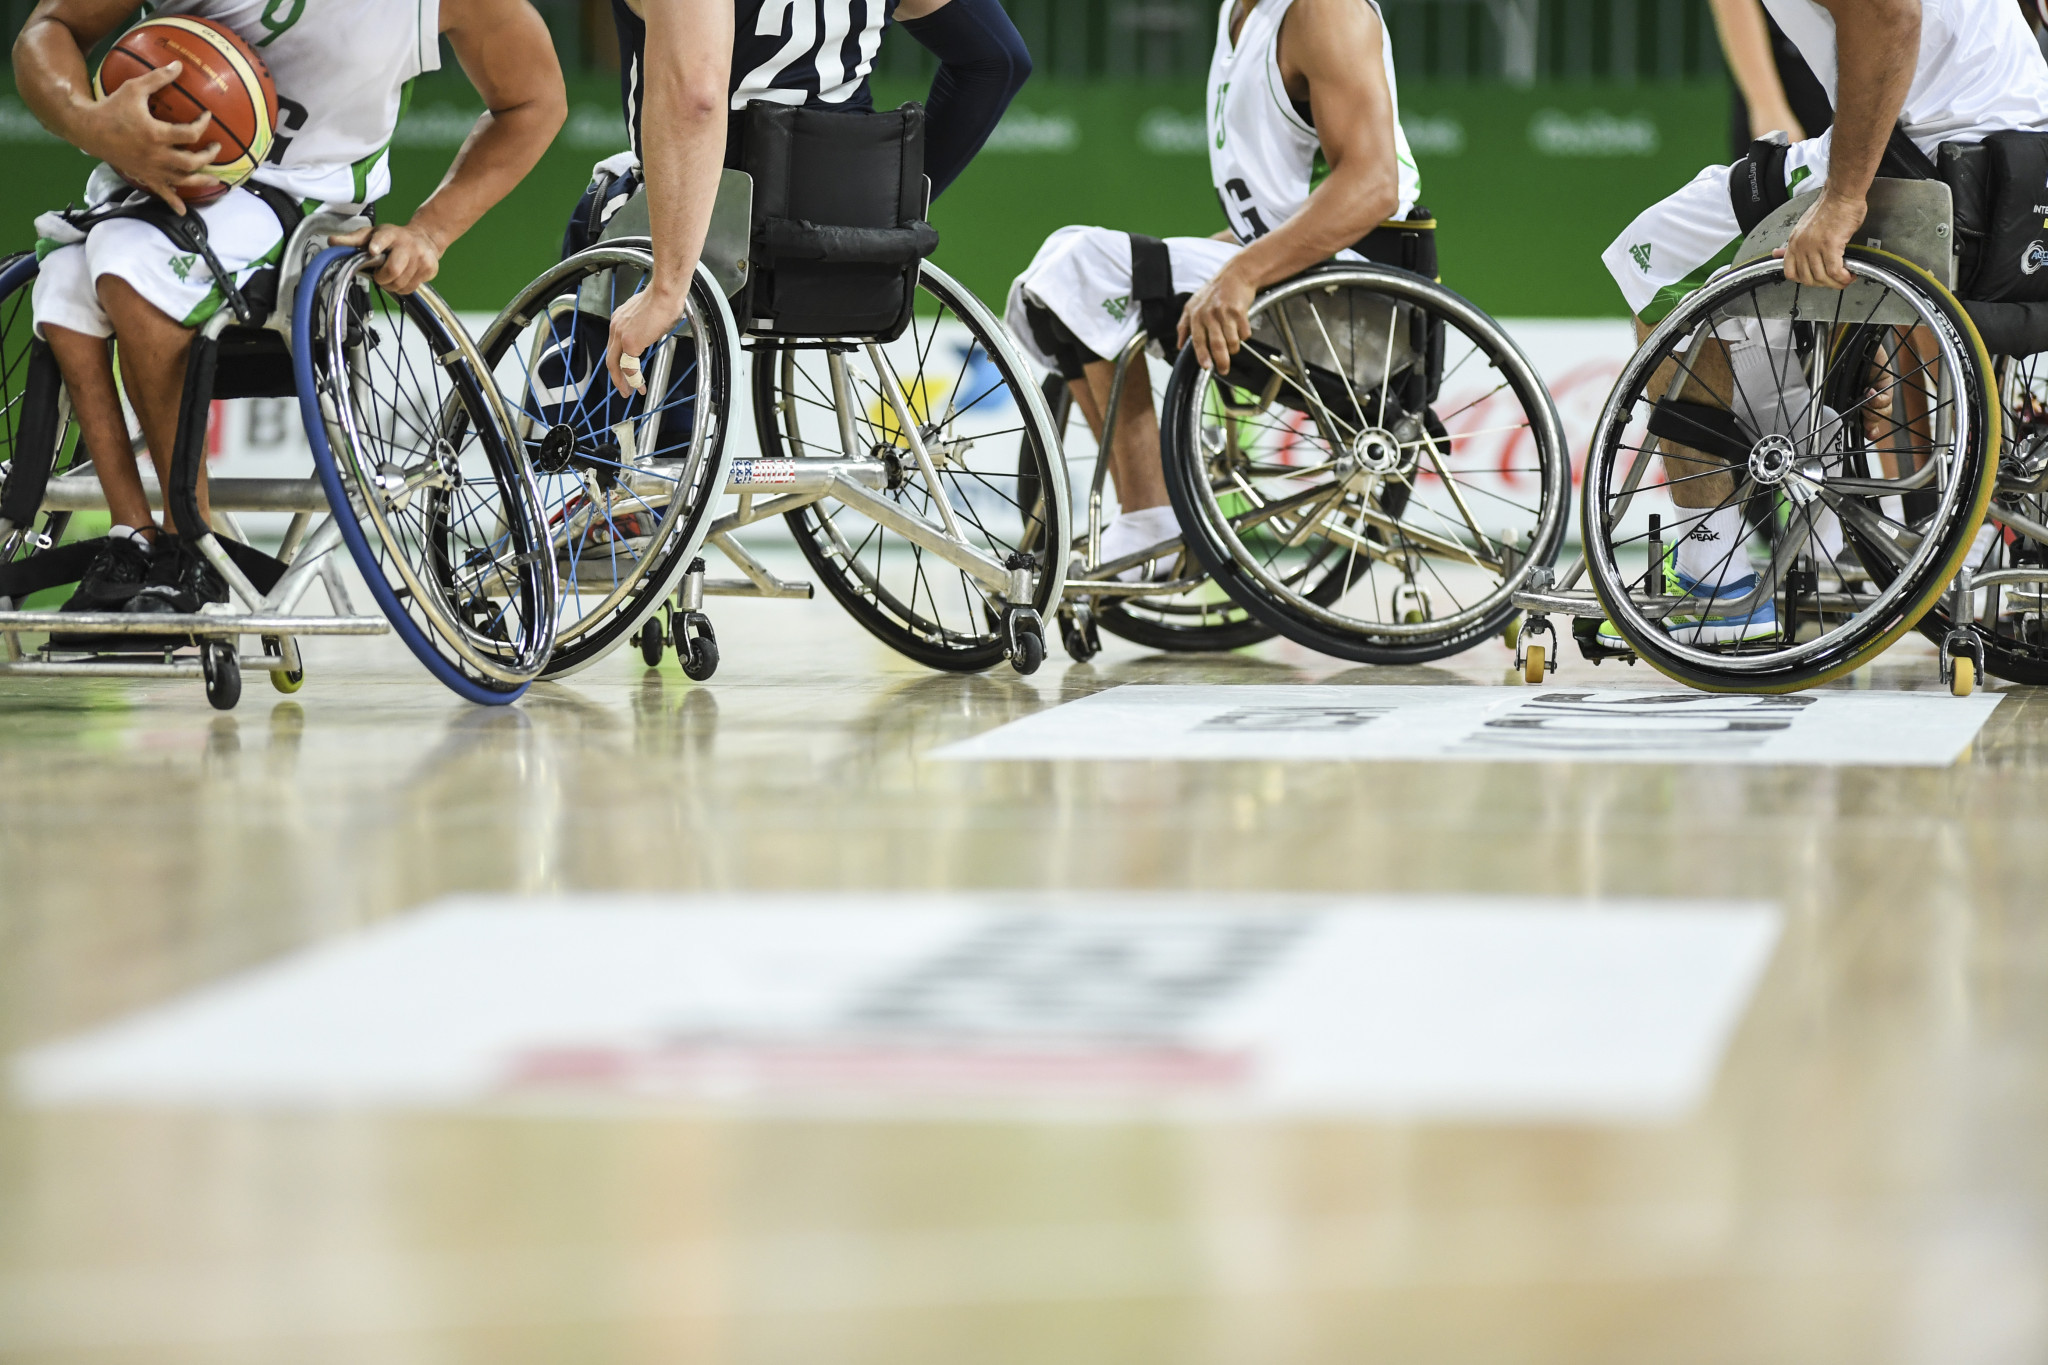 IWBF finds one player ineligible during second phase of classification reassessment process